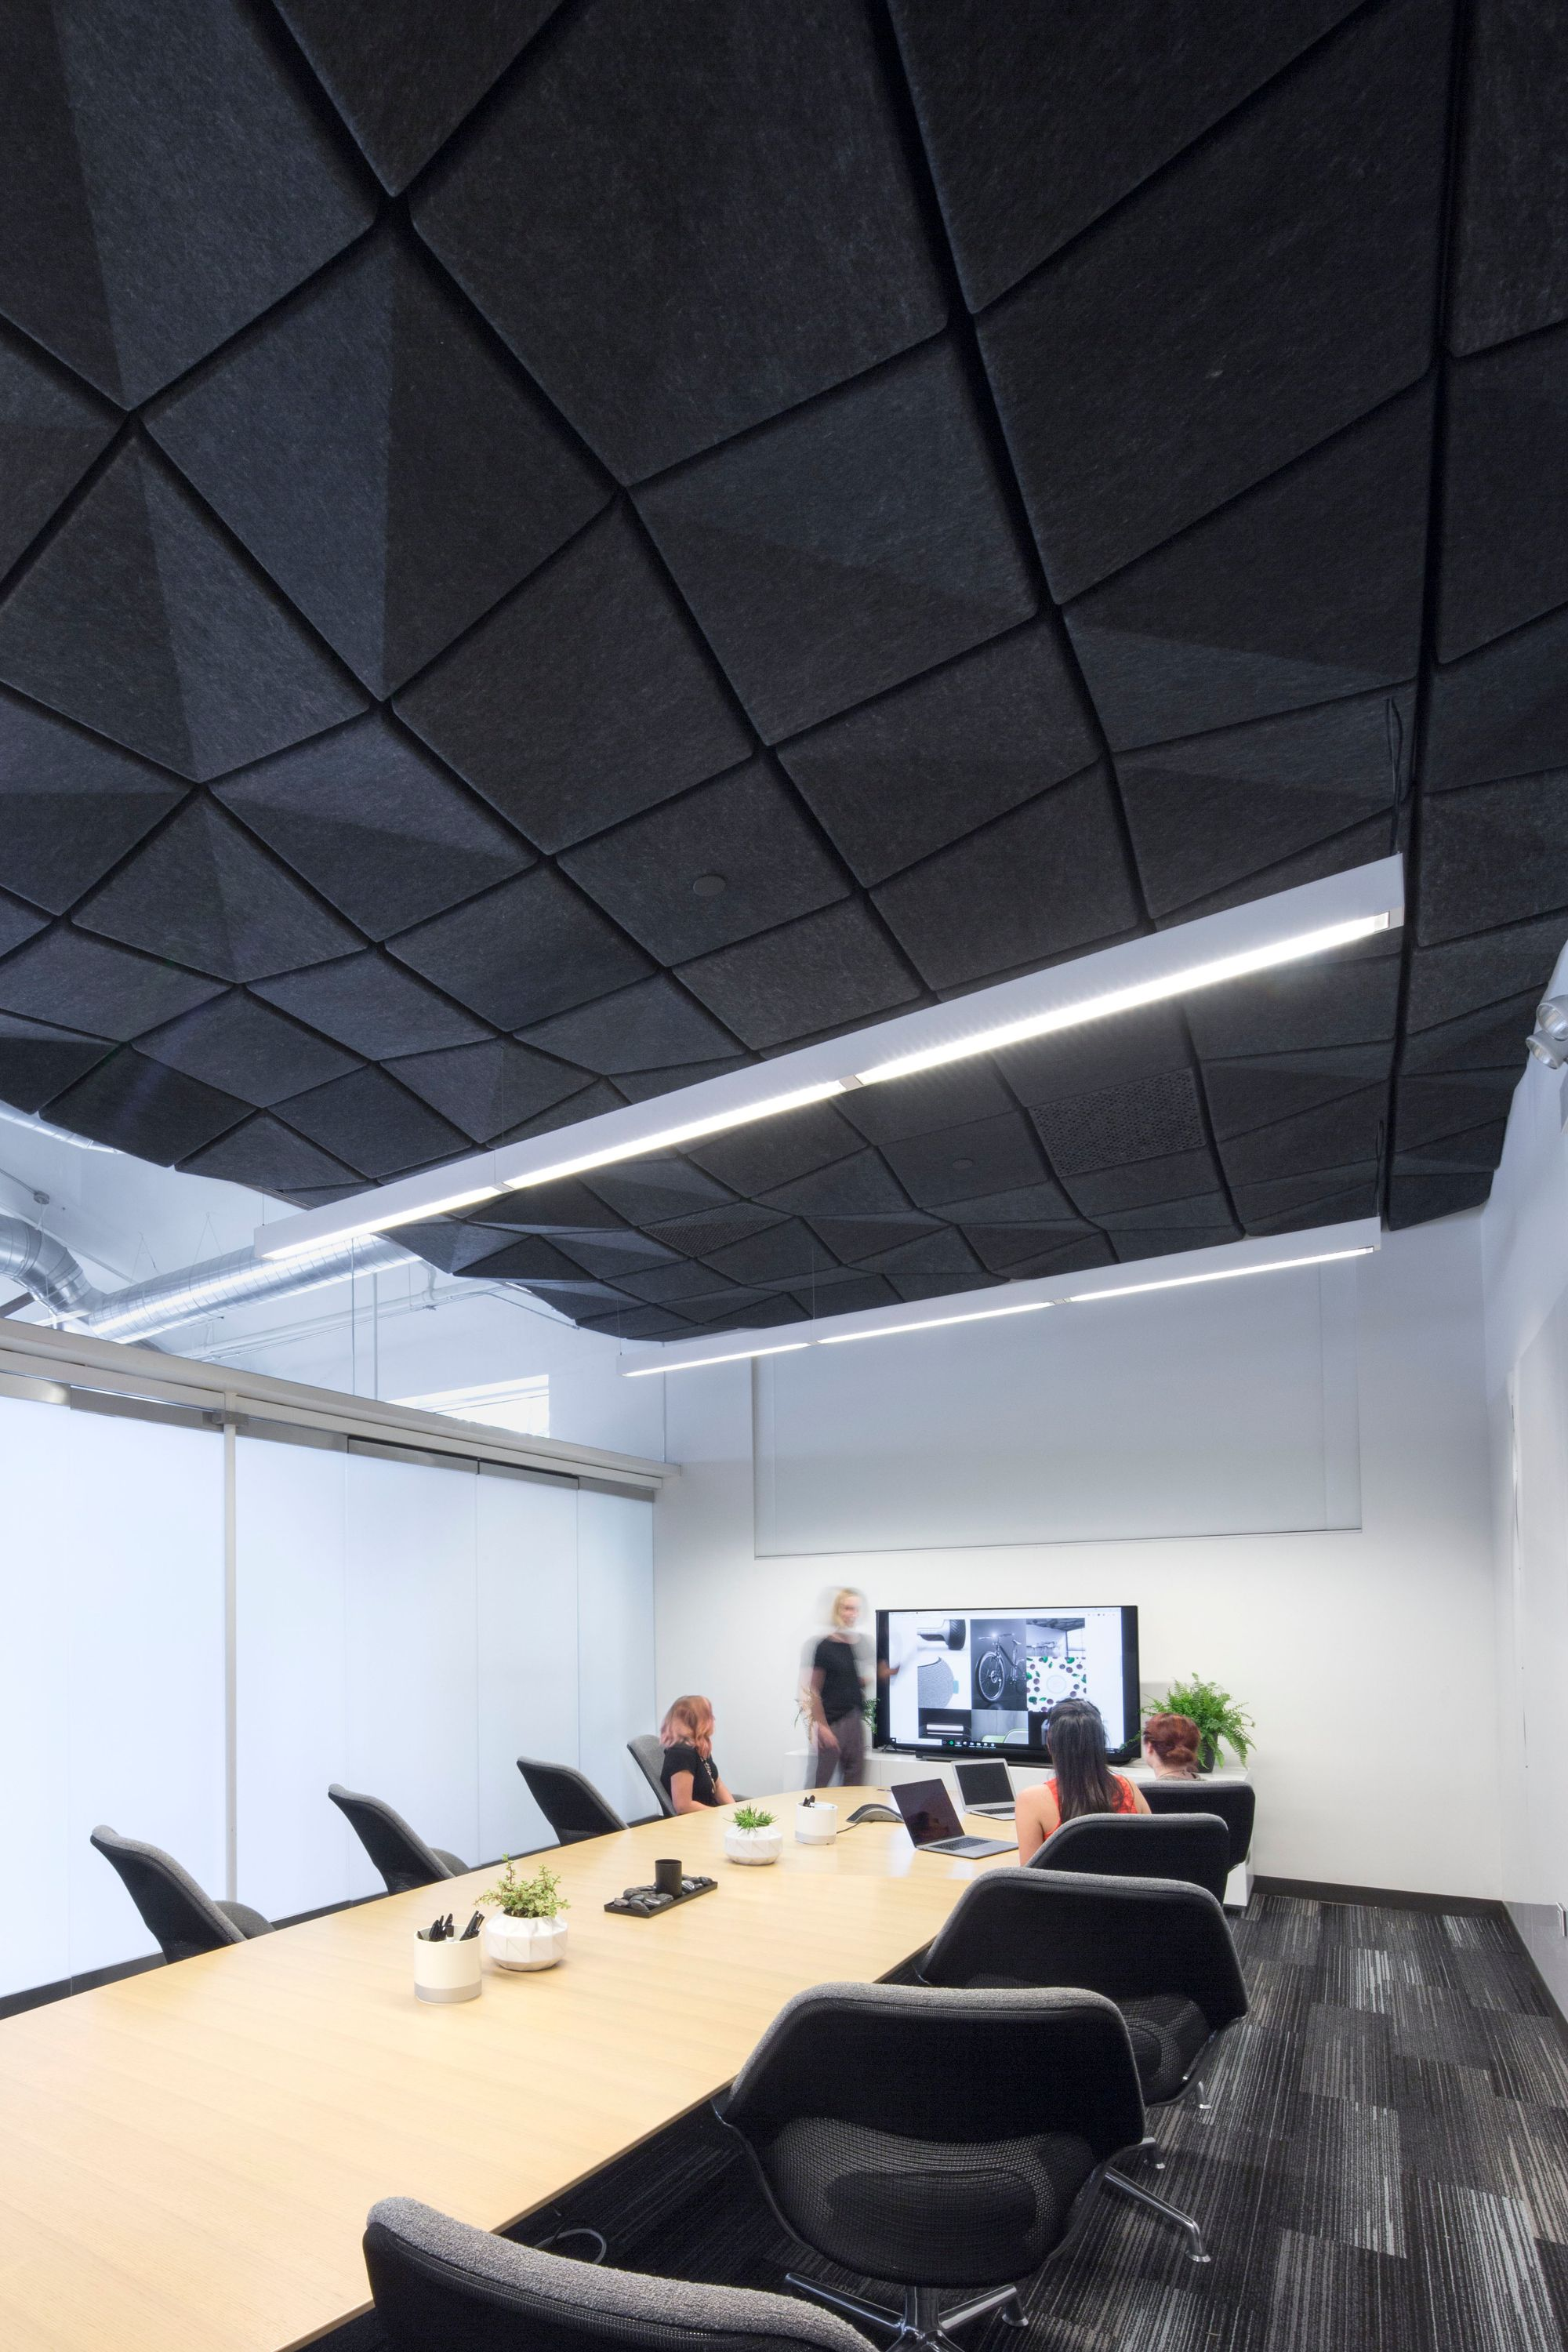 Turf Design Crease Ceiling System Is A Drop Ceiling Product Series That Transforms Interiors Thr Acoustic Ceiling Tiles Acoustic Ceiling Panels Ceiling Tiles